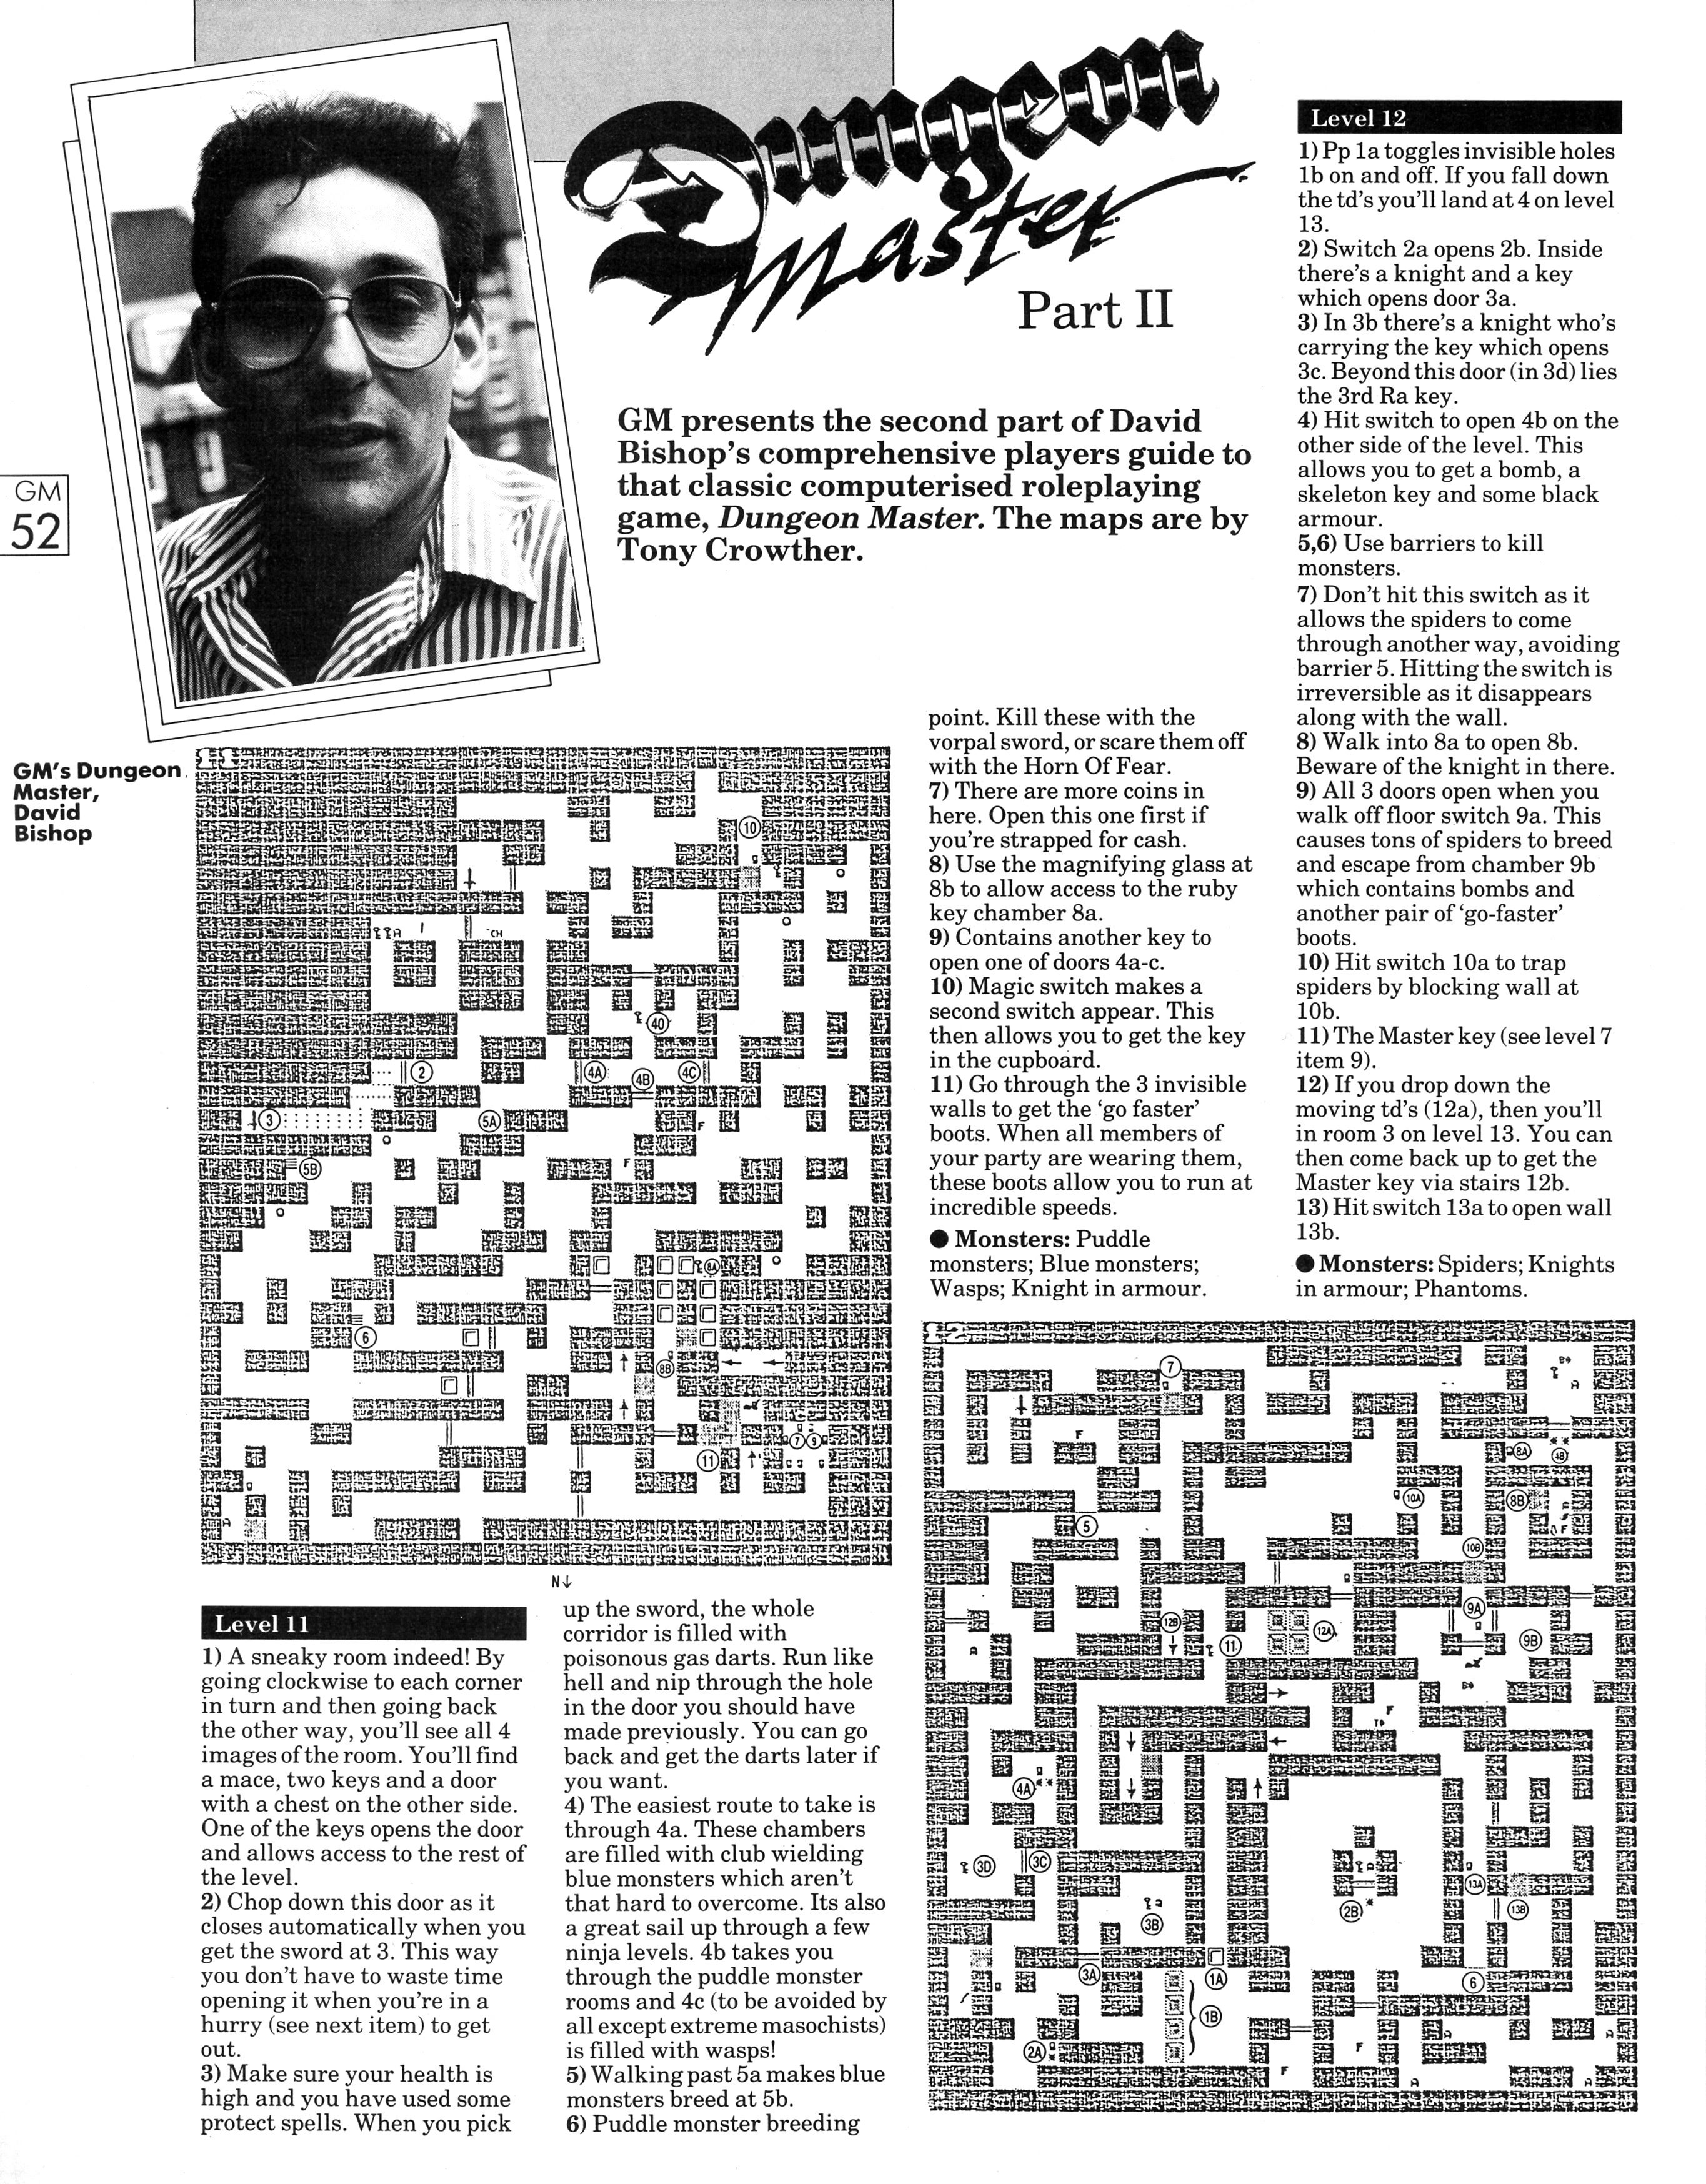 Dungeon Master Guide published in British magazine 'Game Master', Vol 1 No 3 November 1988, Page 52